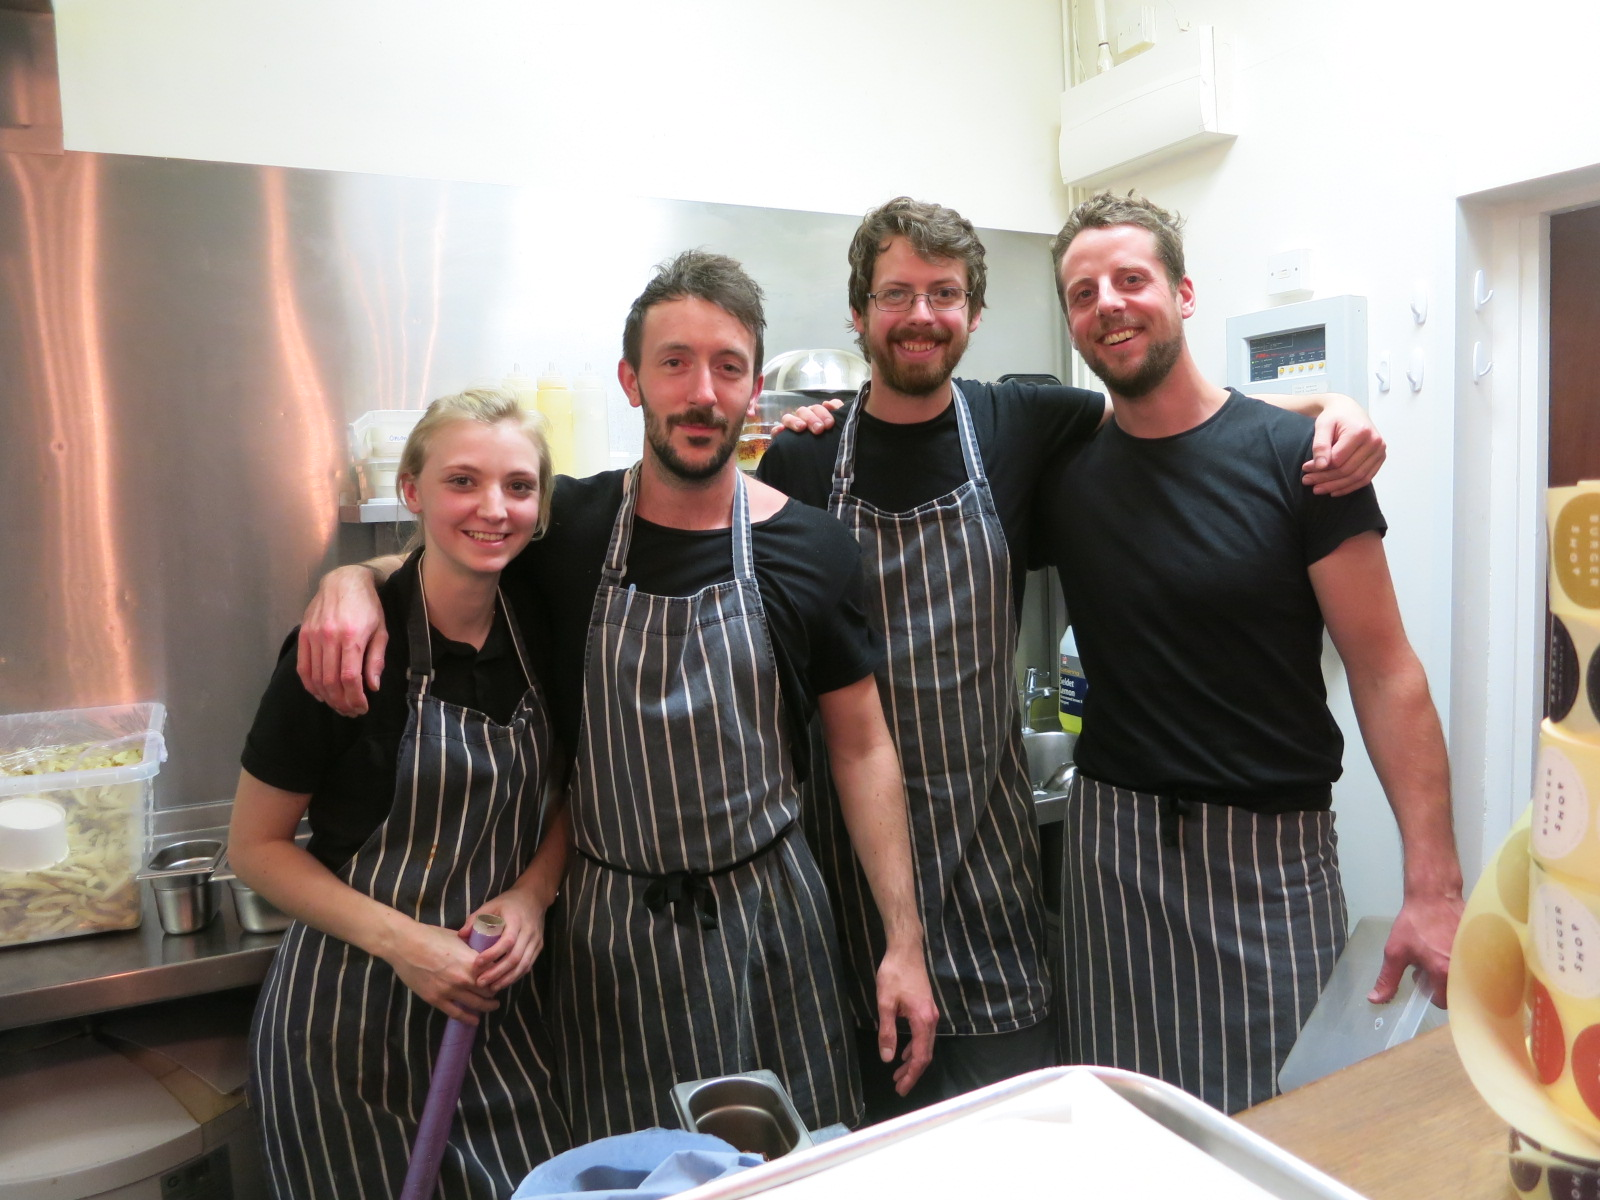 Left to right - Alex, Ally, Colin & Edwin (Dorian the chef disappeared). A Rule of Tum Burger Shop 32 Audrey St, Hereford